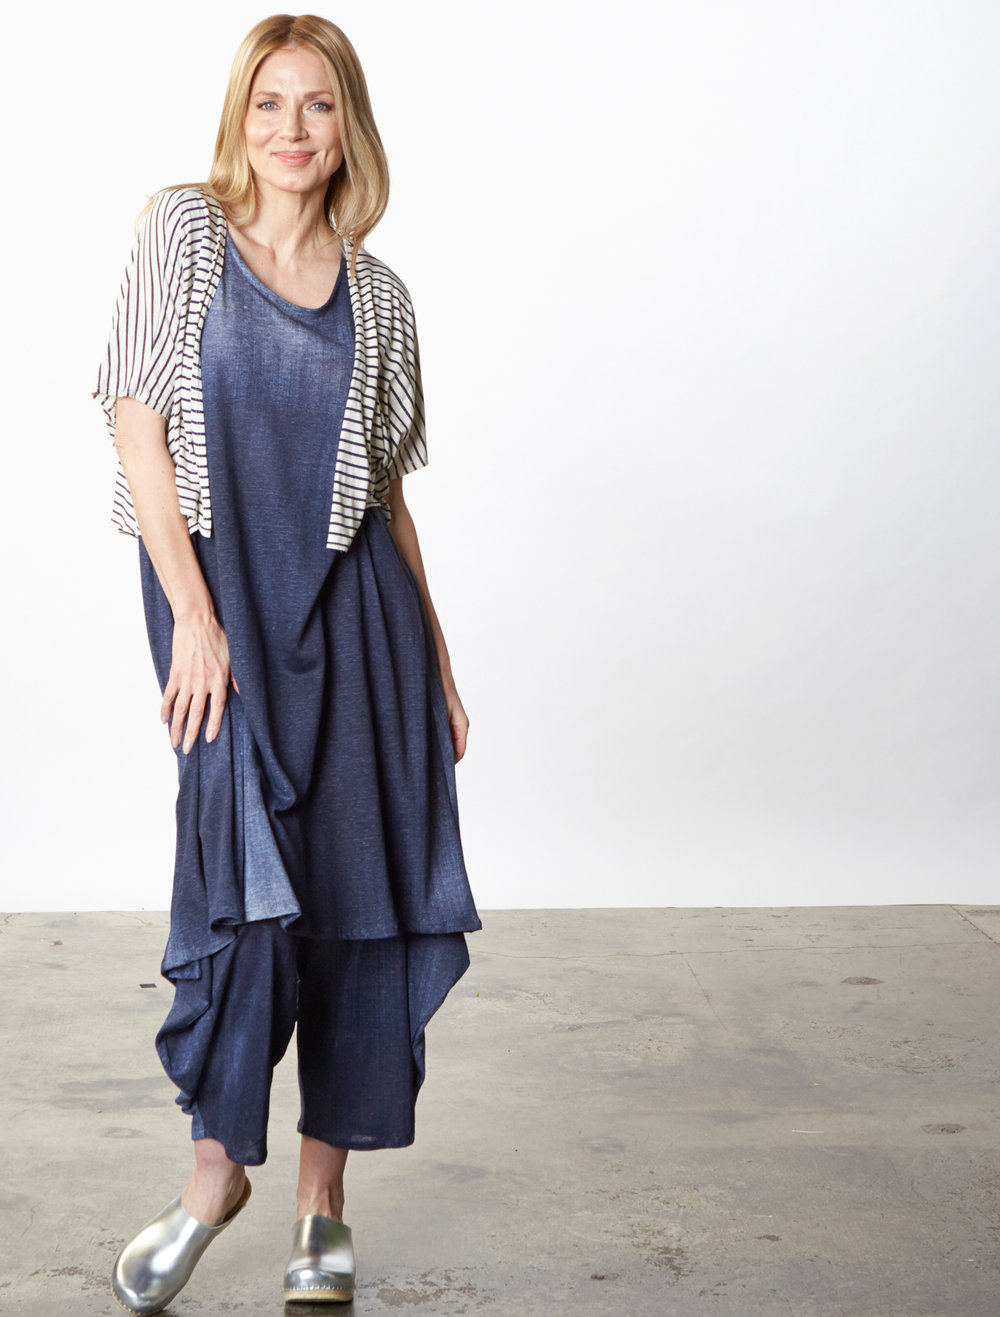 Crop Cardigan in Cream/Blue Italian Striped Jersey, Louie Dress, Hamish Pant in Blue Italian Stampato Linen